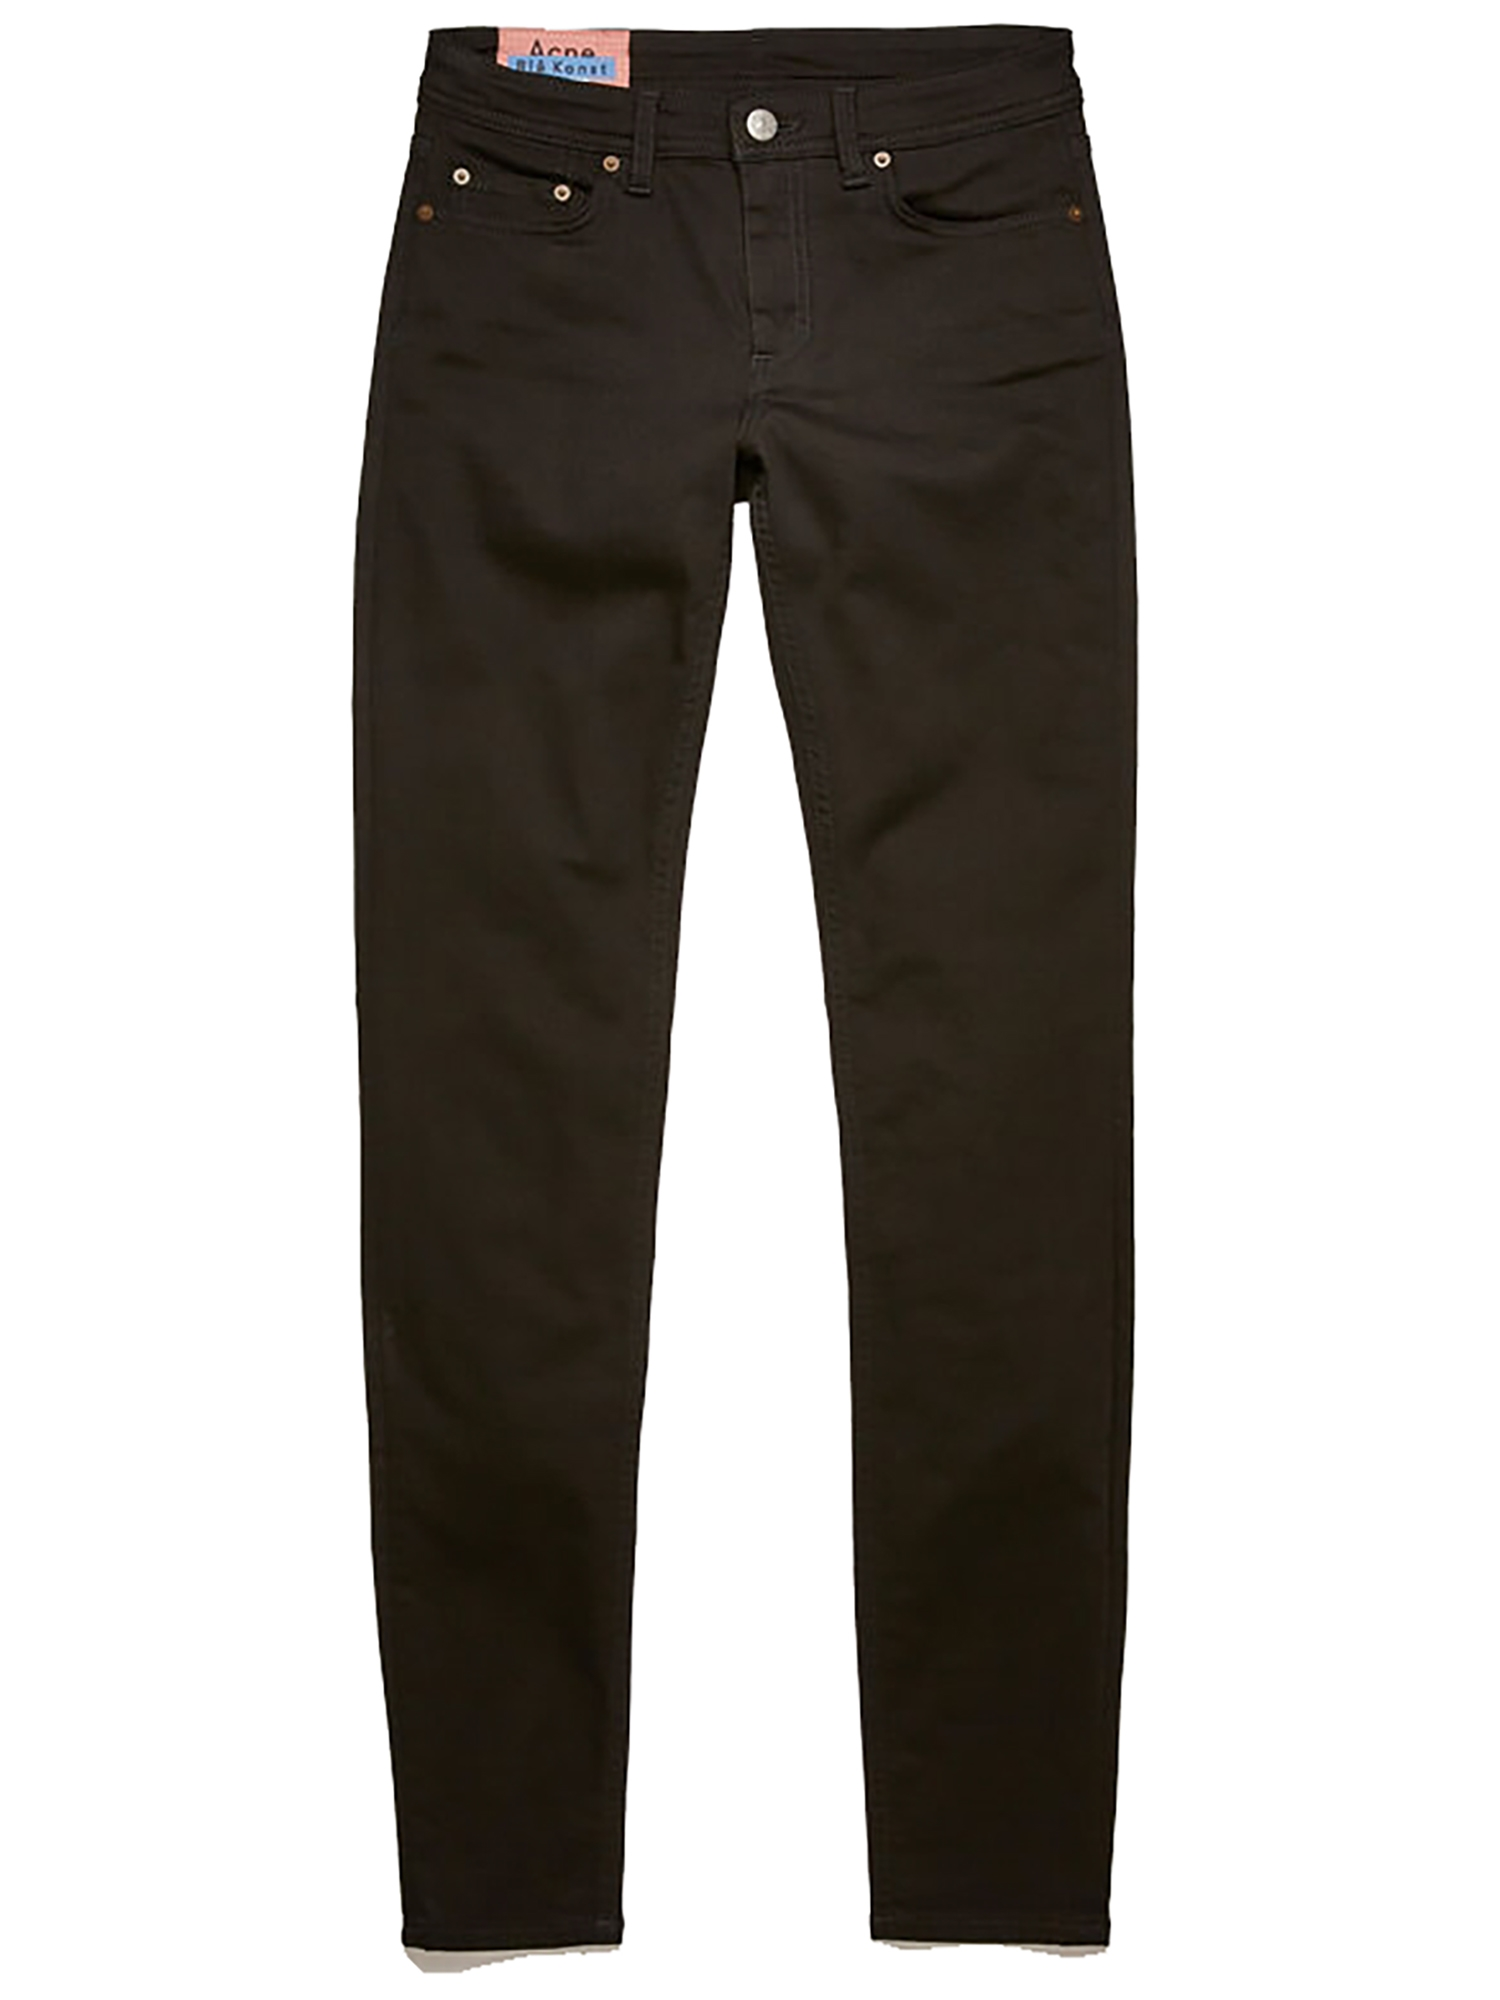 Acne Studios Jeans - Climb Stay Black 30D176-1554